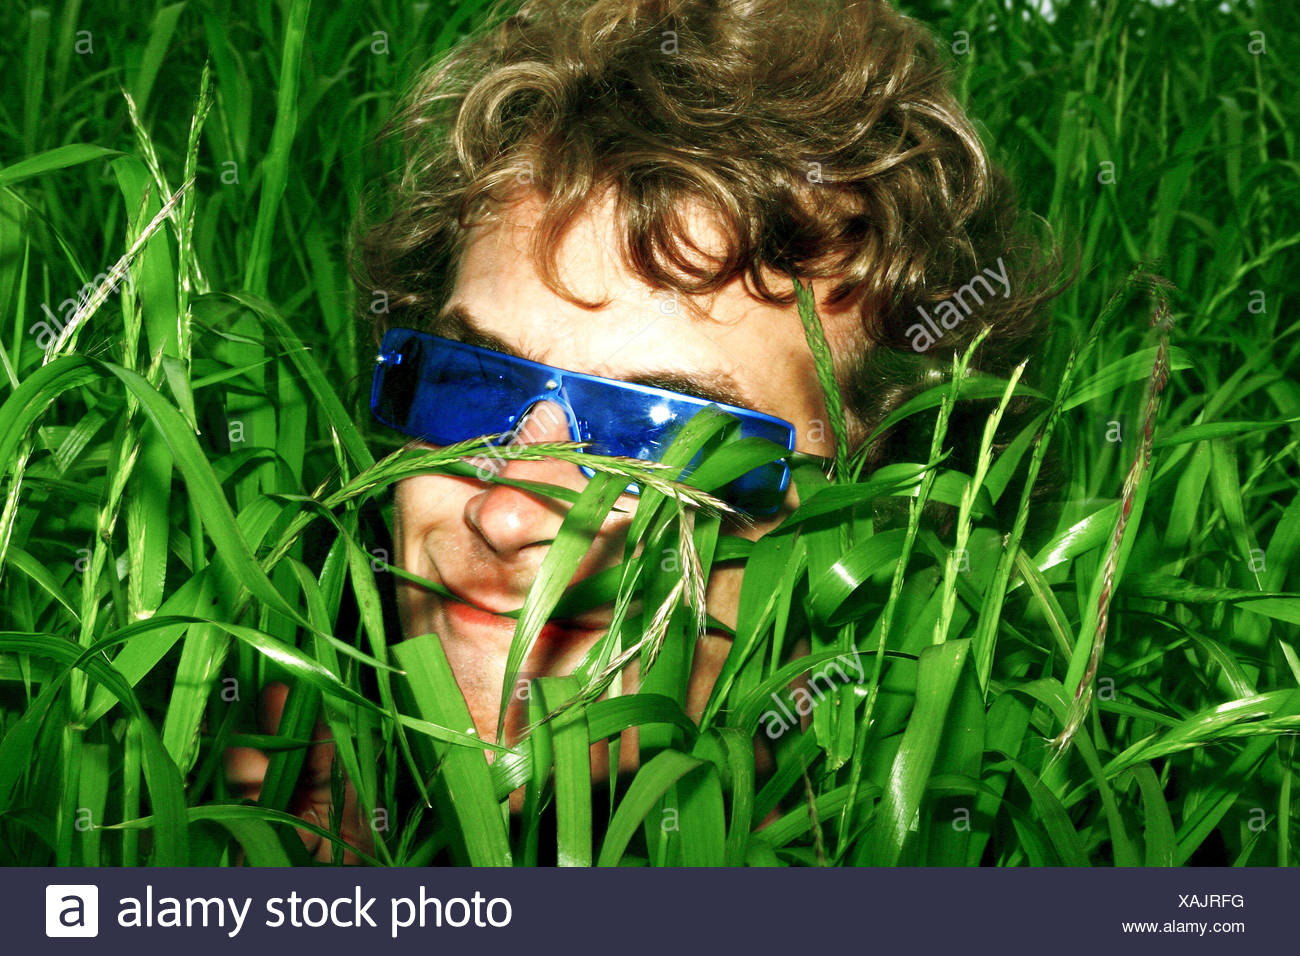 meadow grass man young sunglasses to high level views portrait